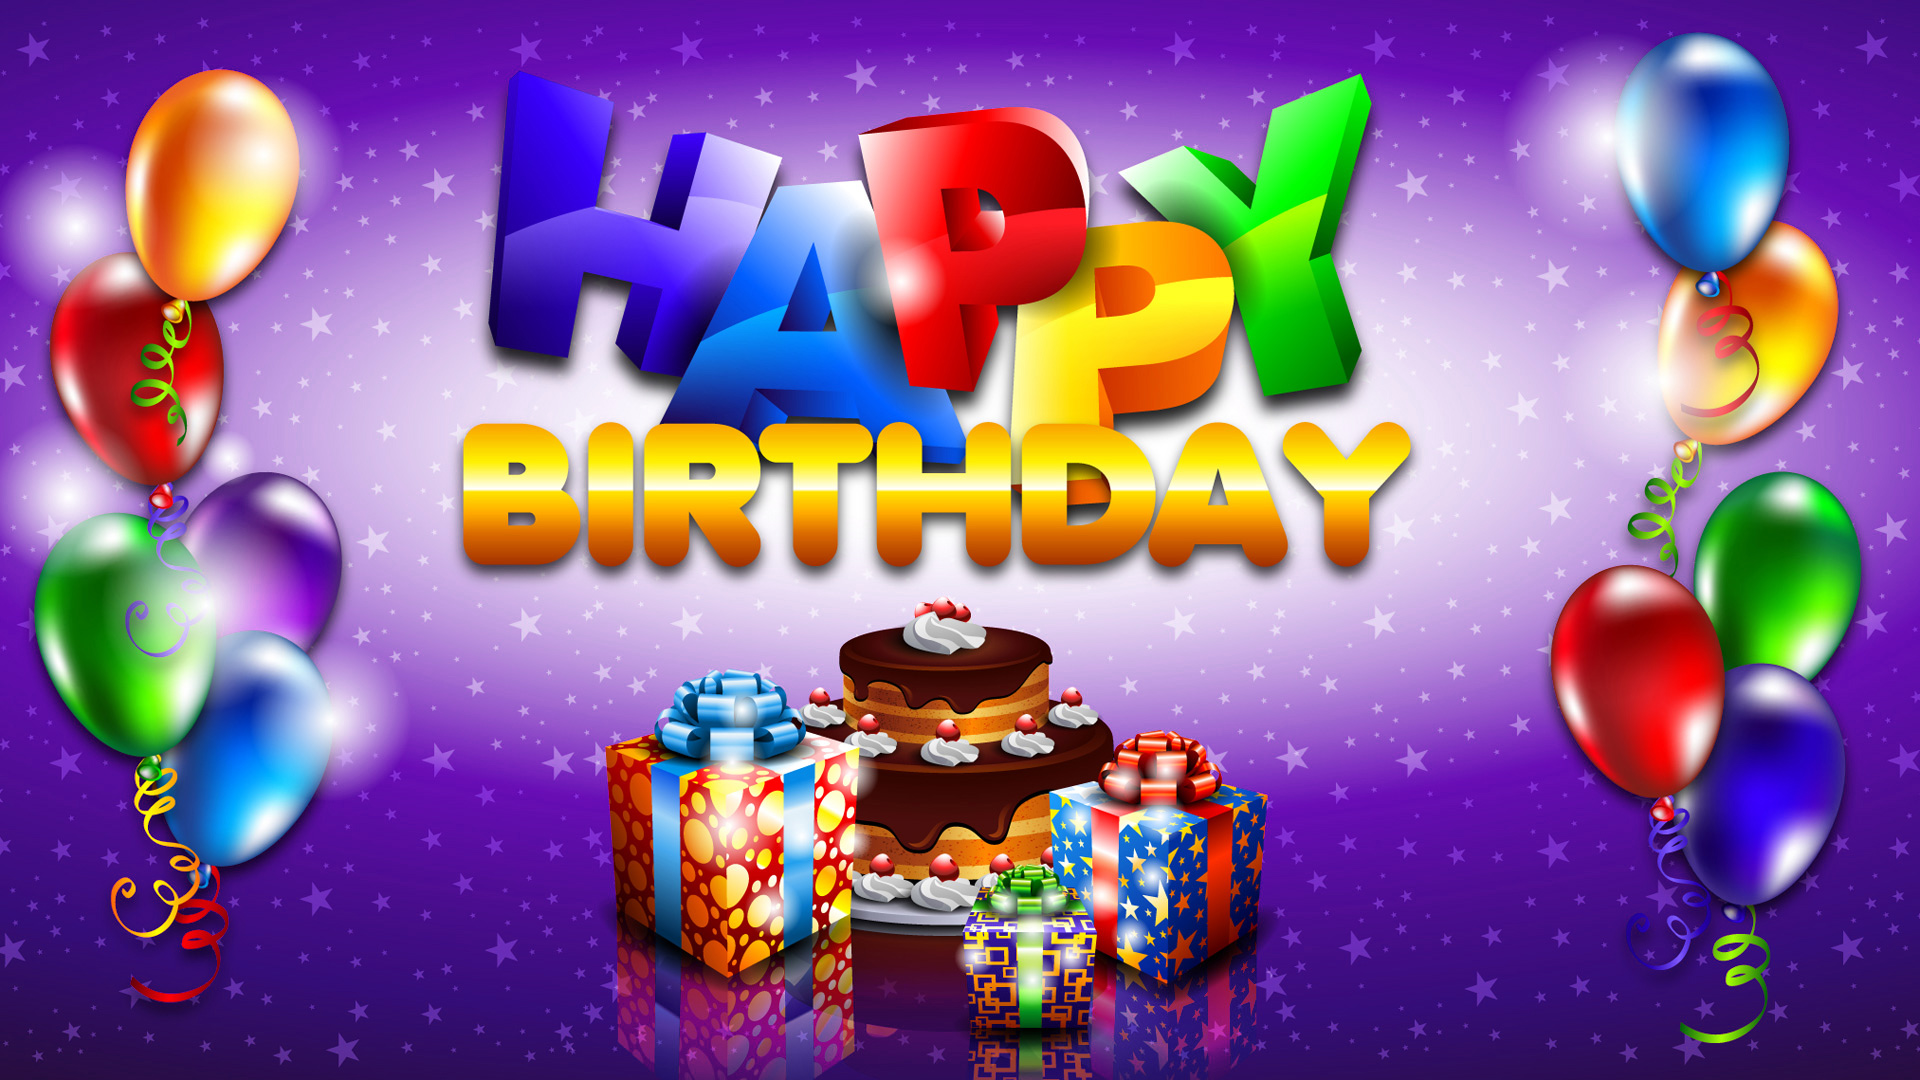 Happy Birthday HD Wallpaper with Cake